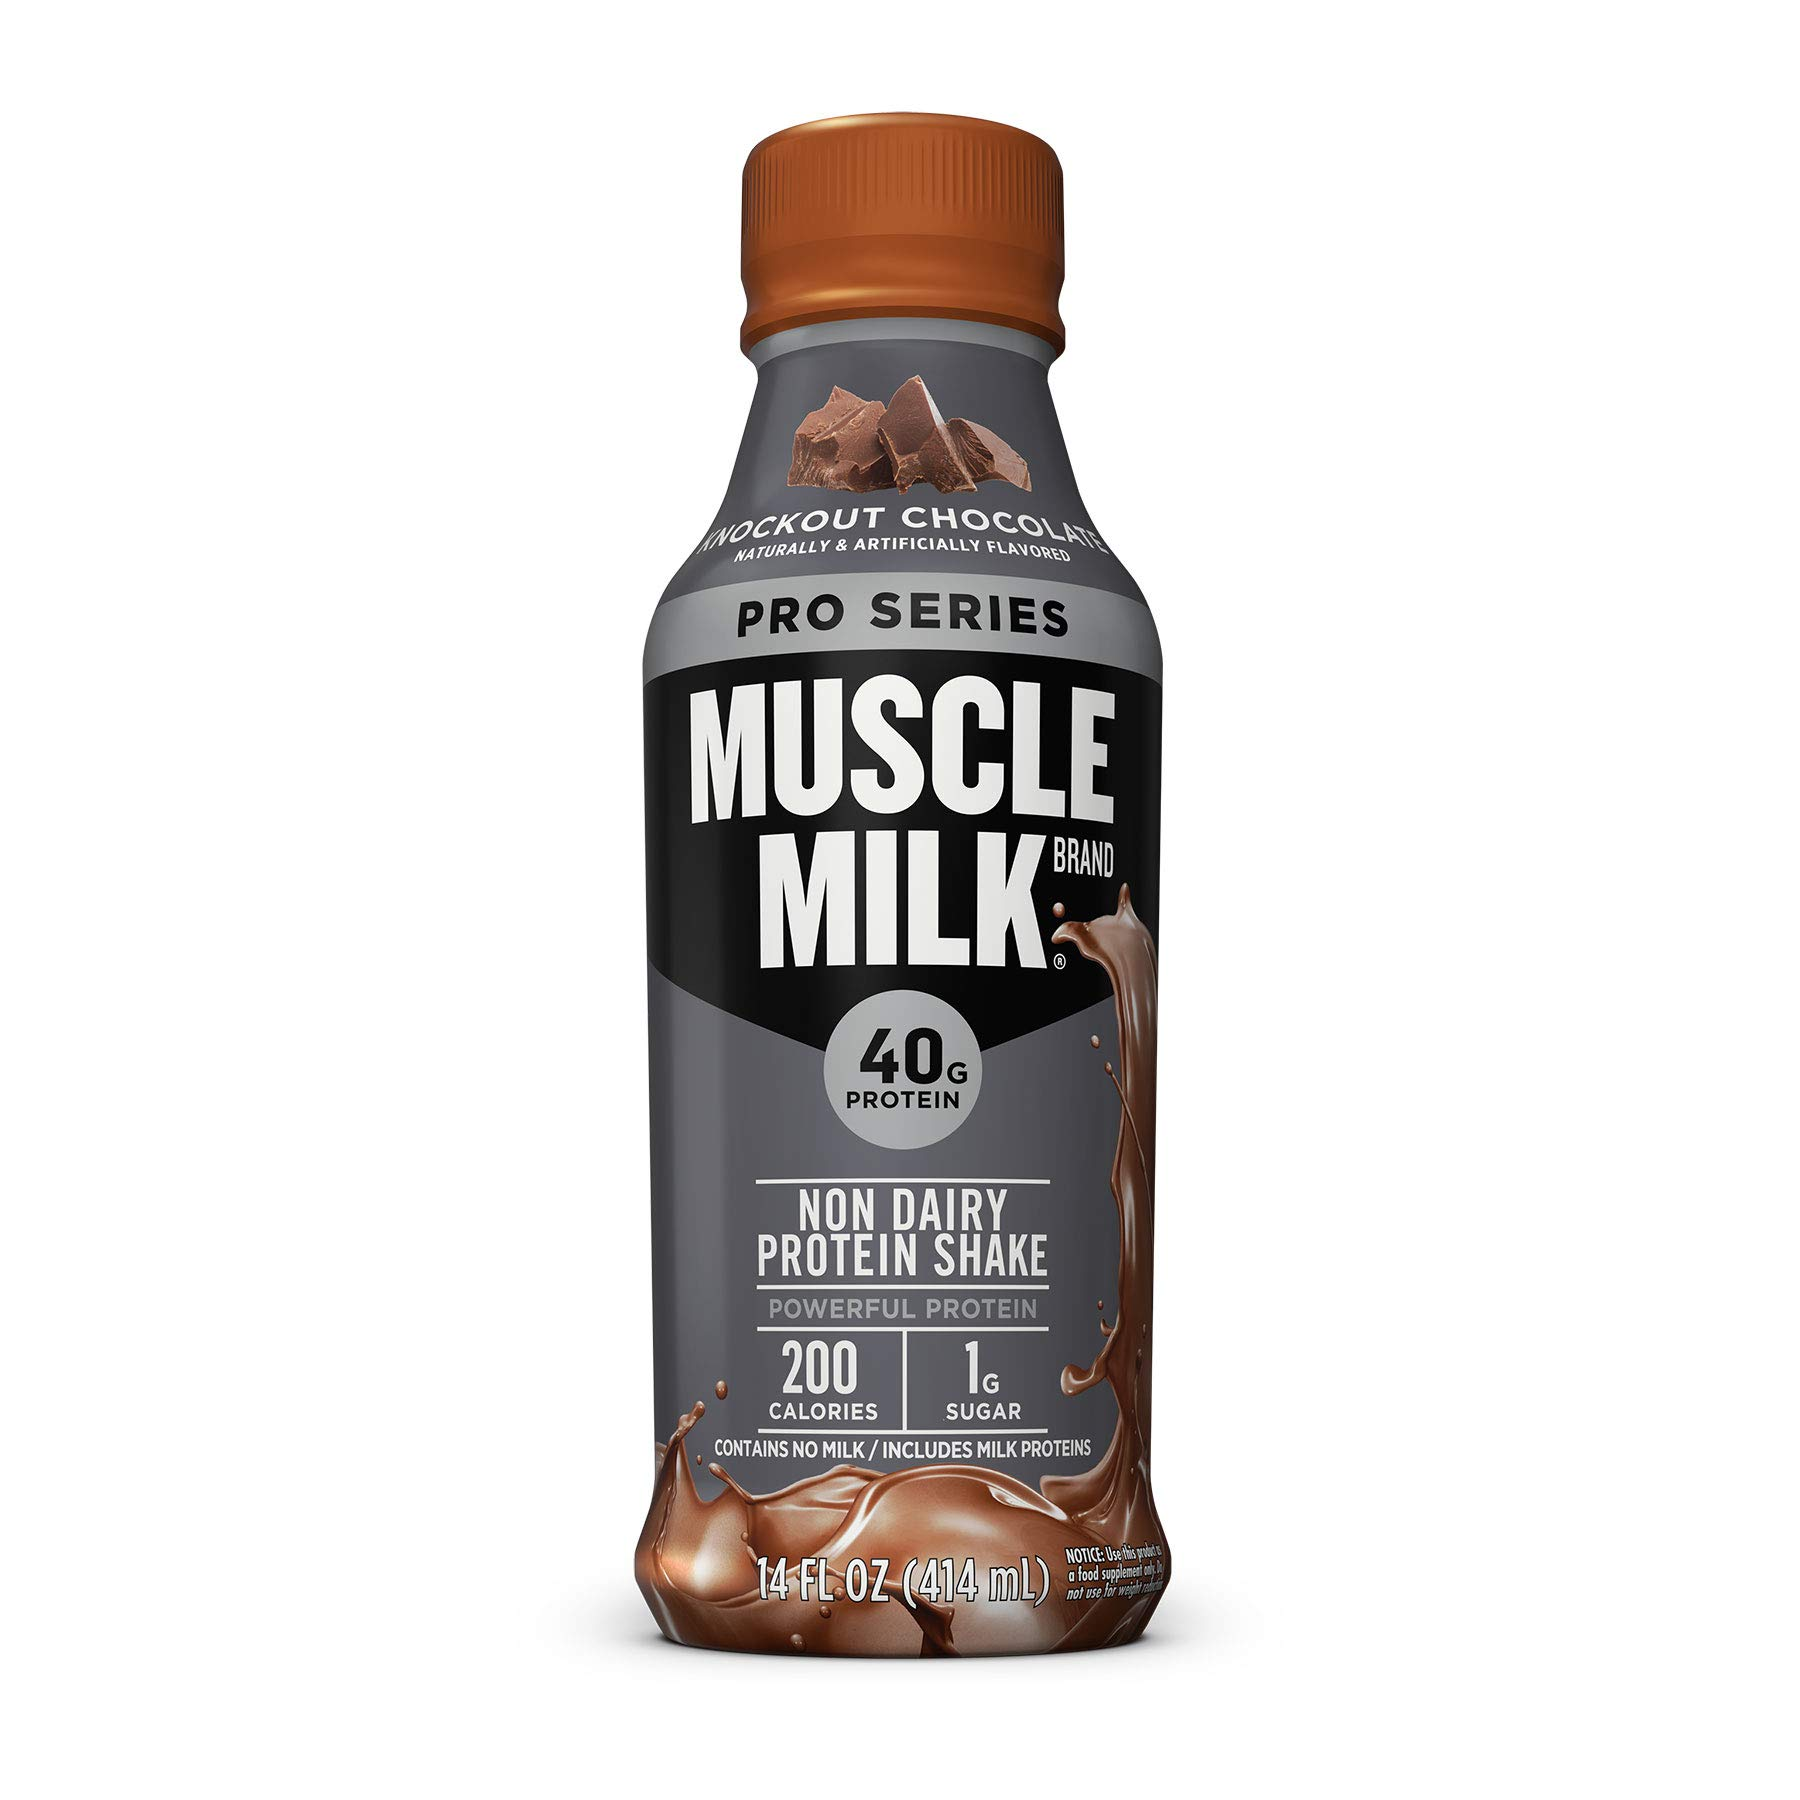 Muscle Milk Pro Series Protein Shake, Knockout Chocolate, 40g Protein, 14 FL OZ, 12 Count by Muscle Milk